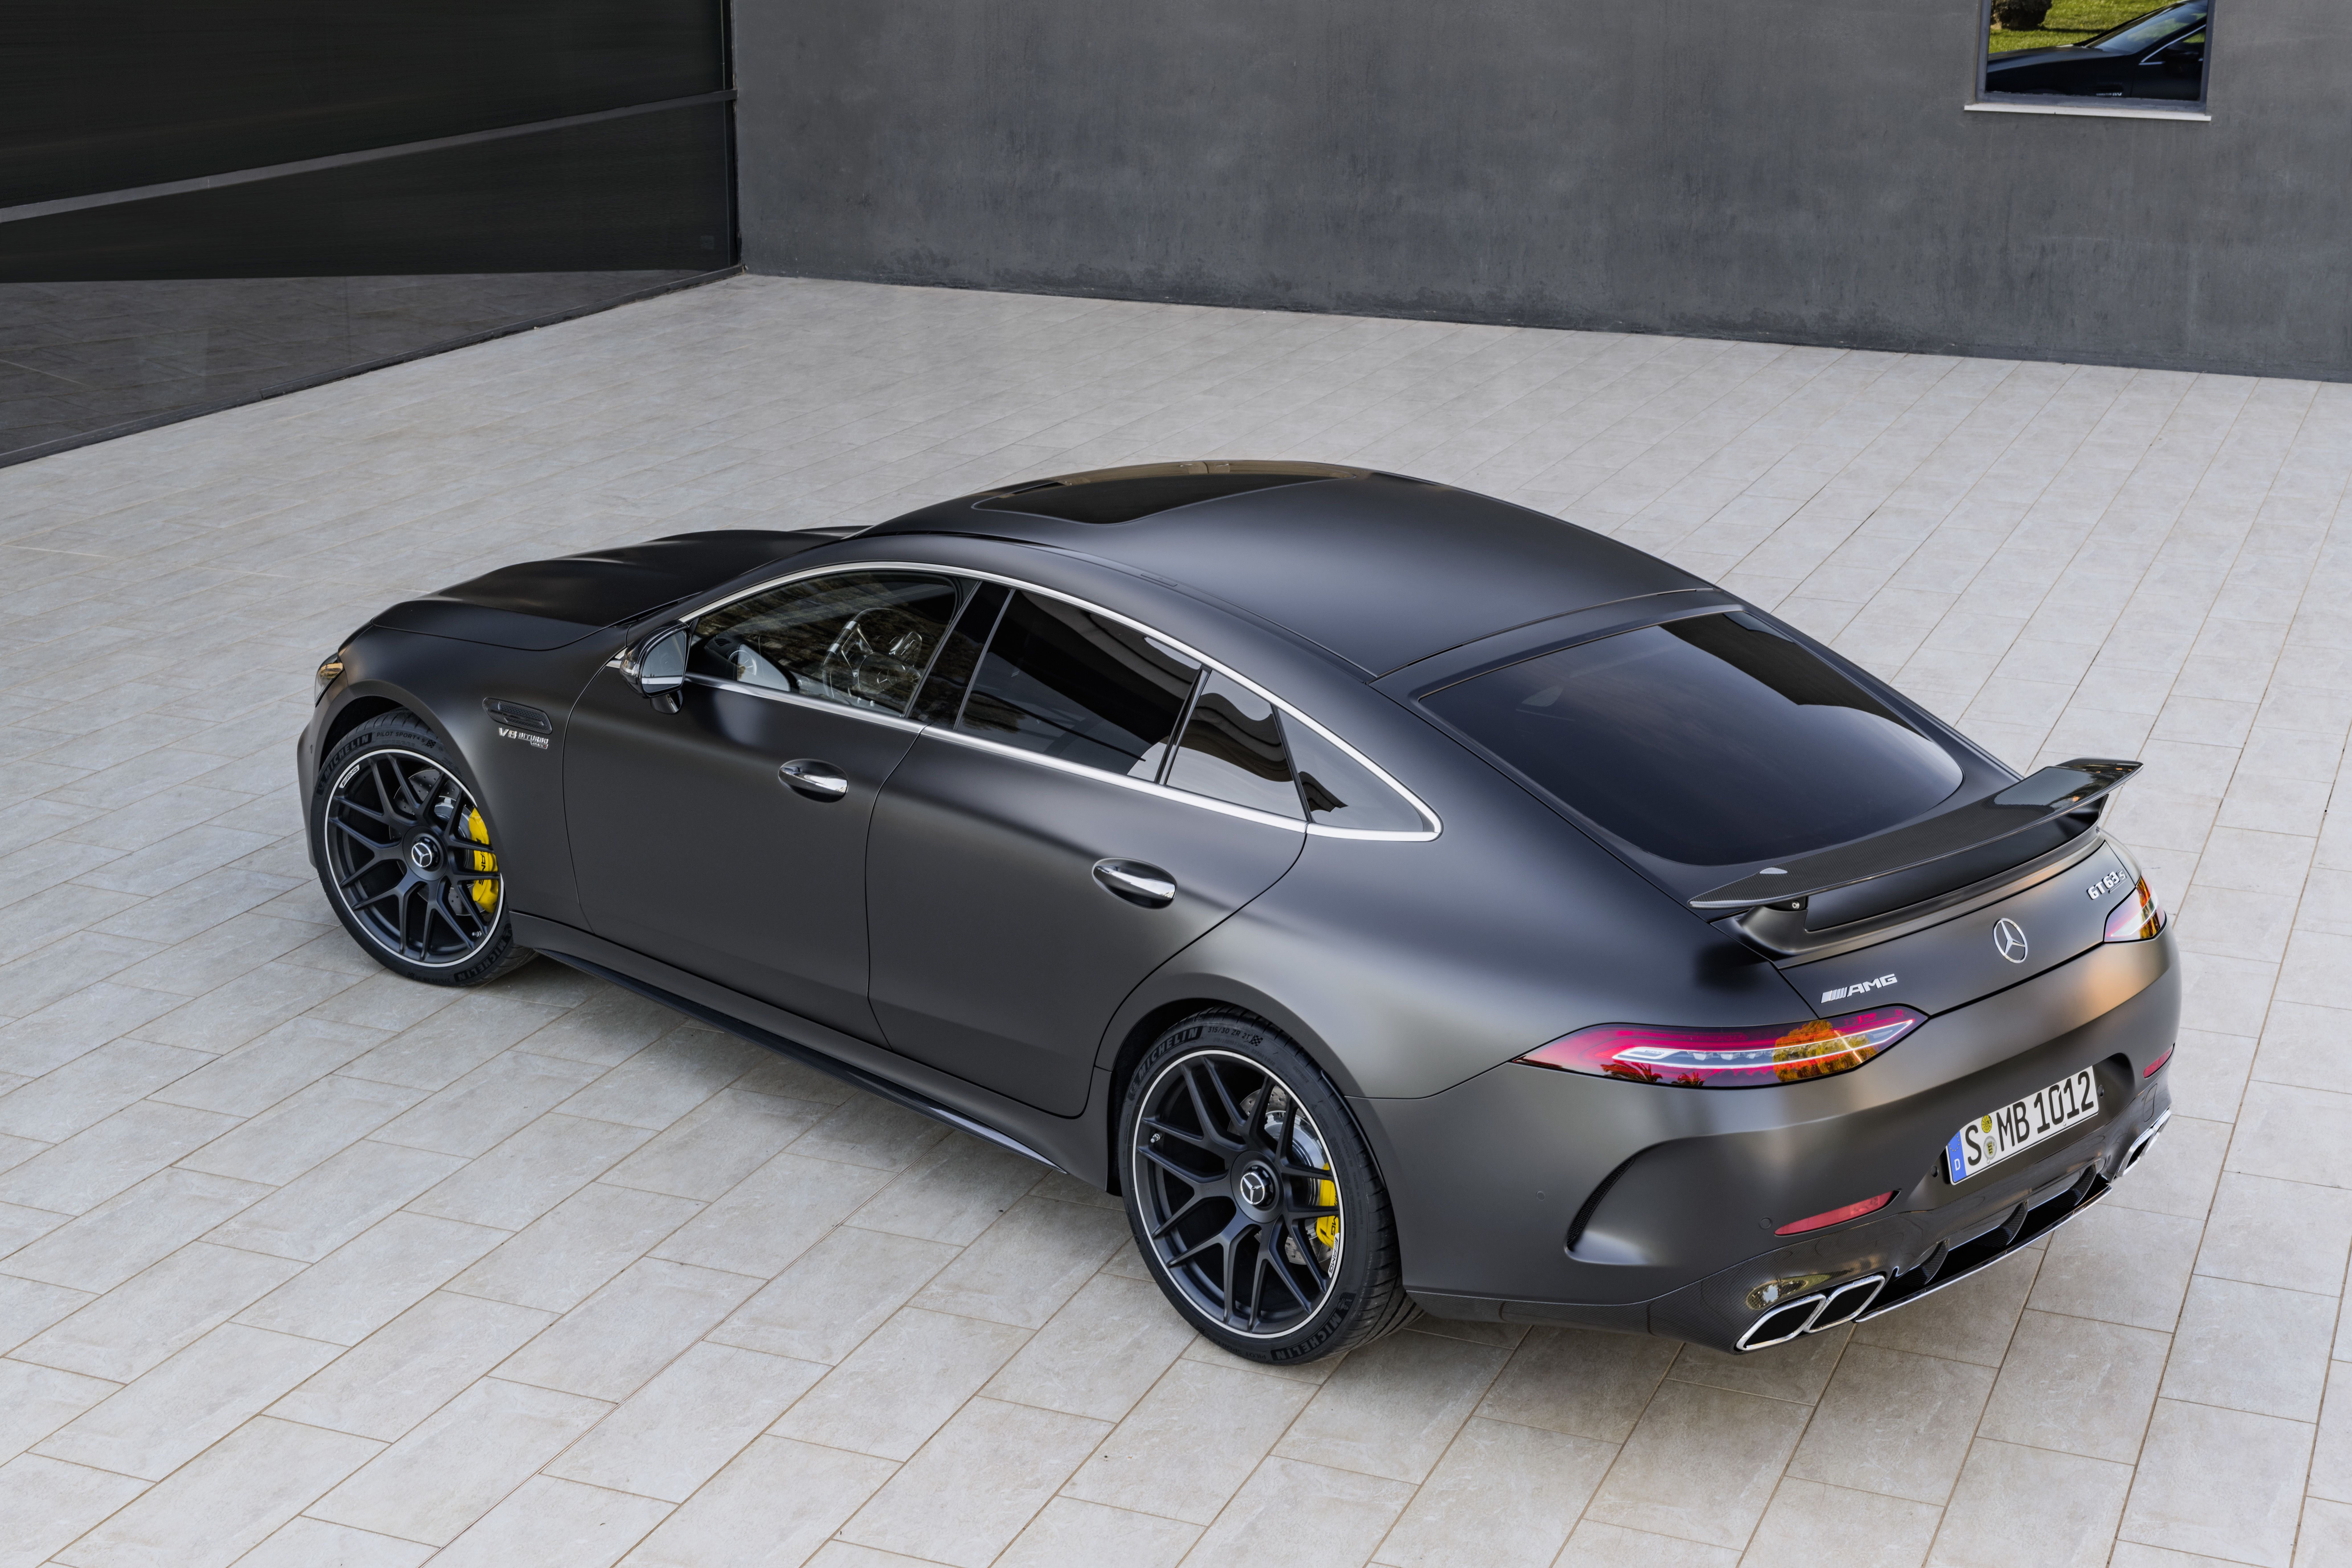 Mercedes Amg Gt 4 Door Coupe 4 Door Sports Cars Mercedes Benz